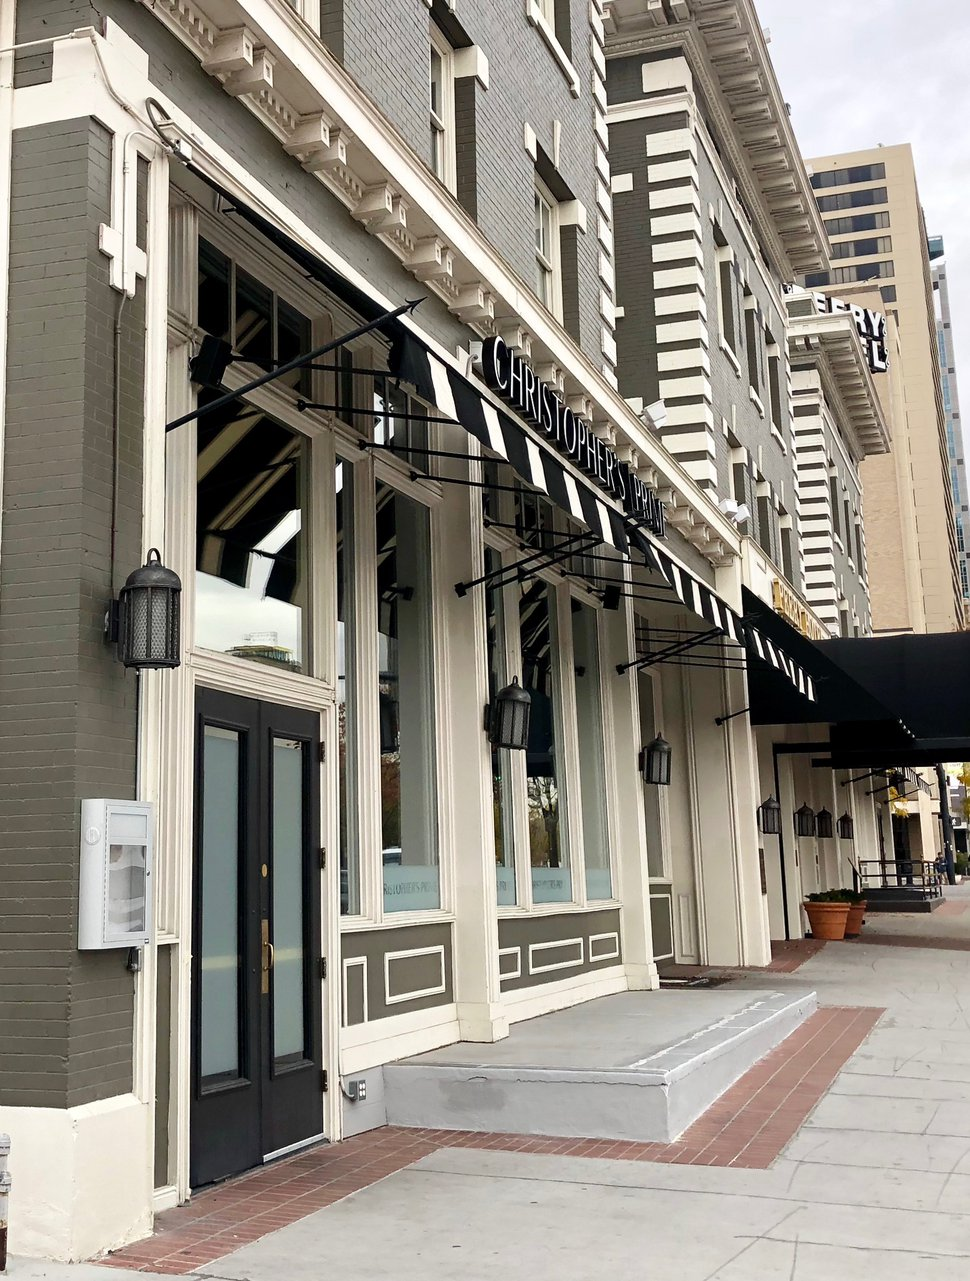 (Brodi Ashton | For The Salt Lake Tribune) Christopher's Prime Tavern and Grill has returned to Salt Lake City's Peery Hotel after several years on Pierpont Avenue.